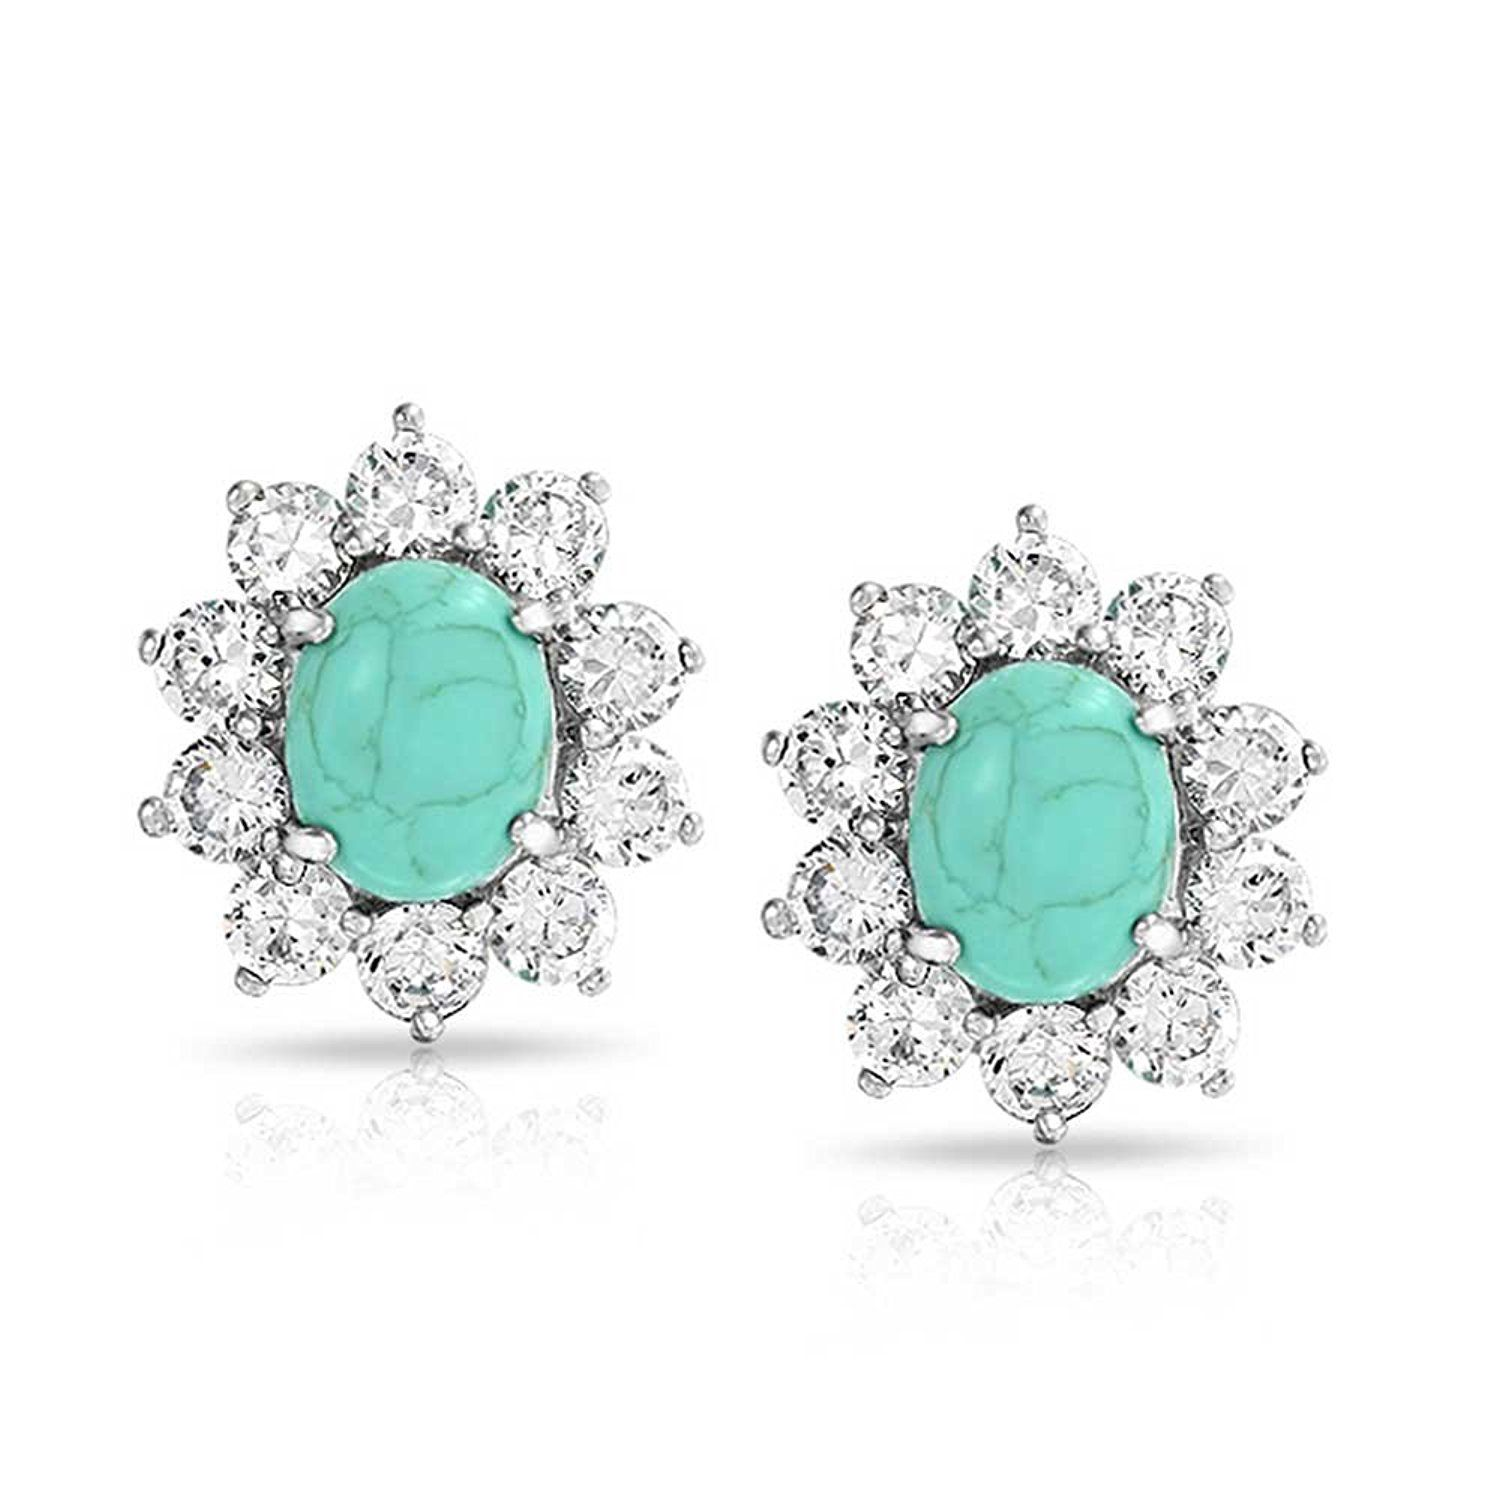 december earrings stud set zircon birthstone shop blue p round crystal sterling authentic silver